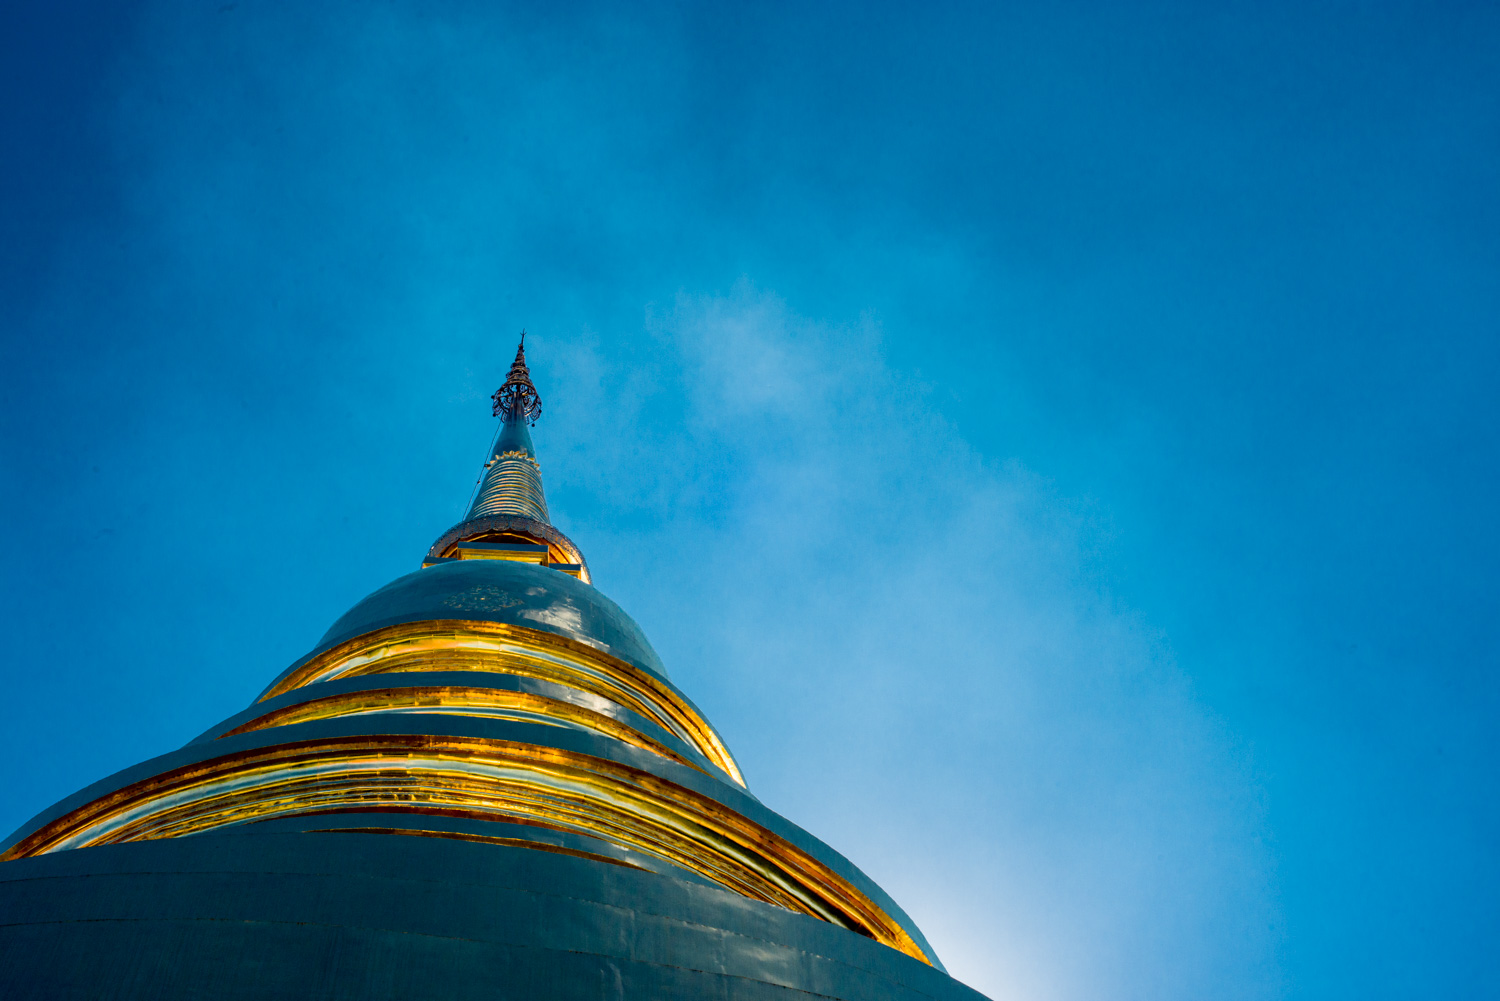 How to Make Well Exposed Photos Every Time Chedi